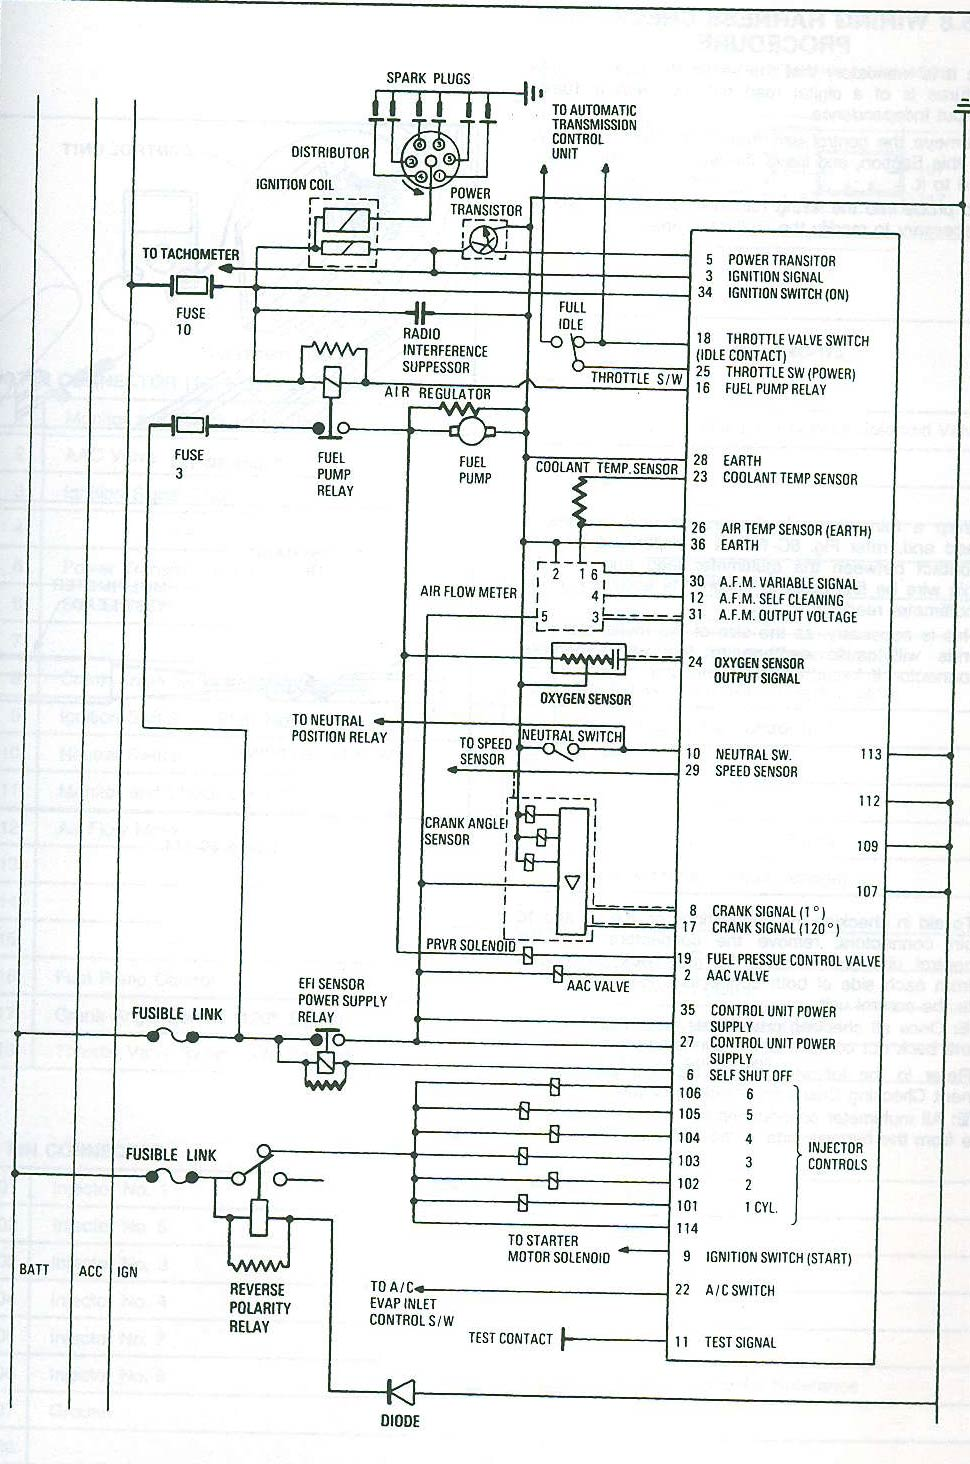 ecuwiring vl commodore dash wiring diagram efcaviation com vt commodore ignition wiring diagram at fashall.co